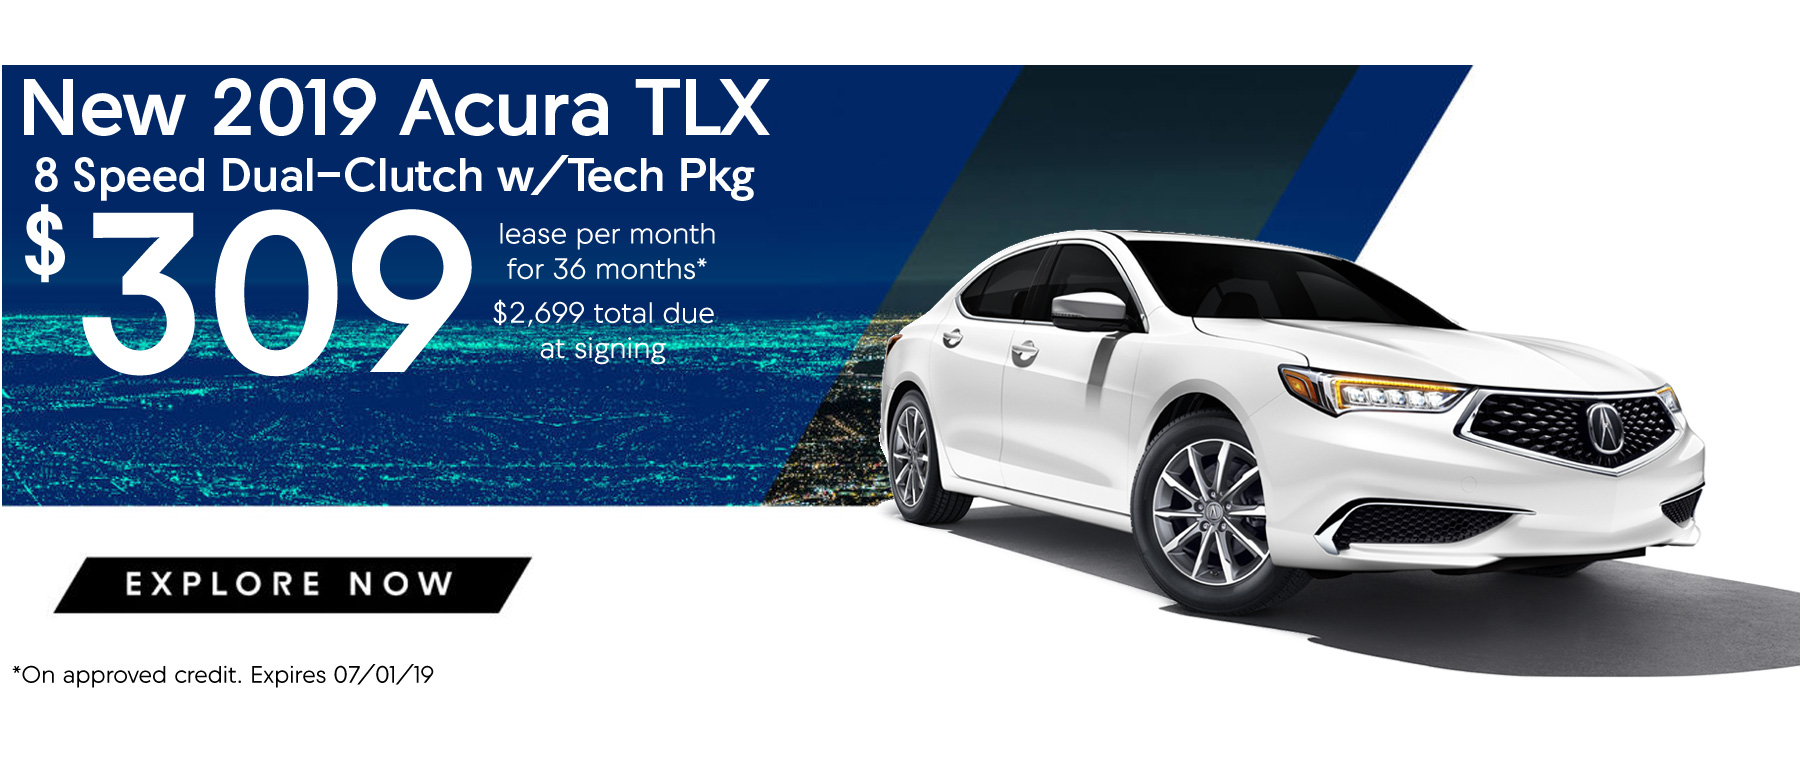 Ron Tonkin Acura Lease APR Specials Ron Tonkin Acura - Lease an acura